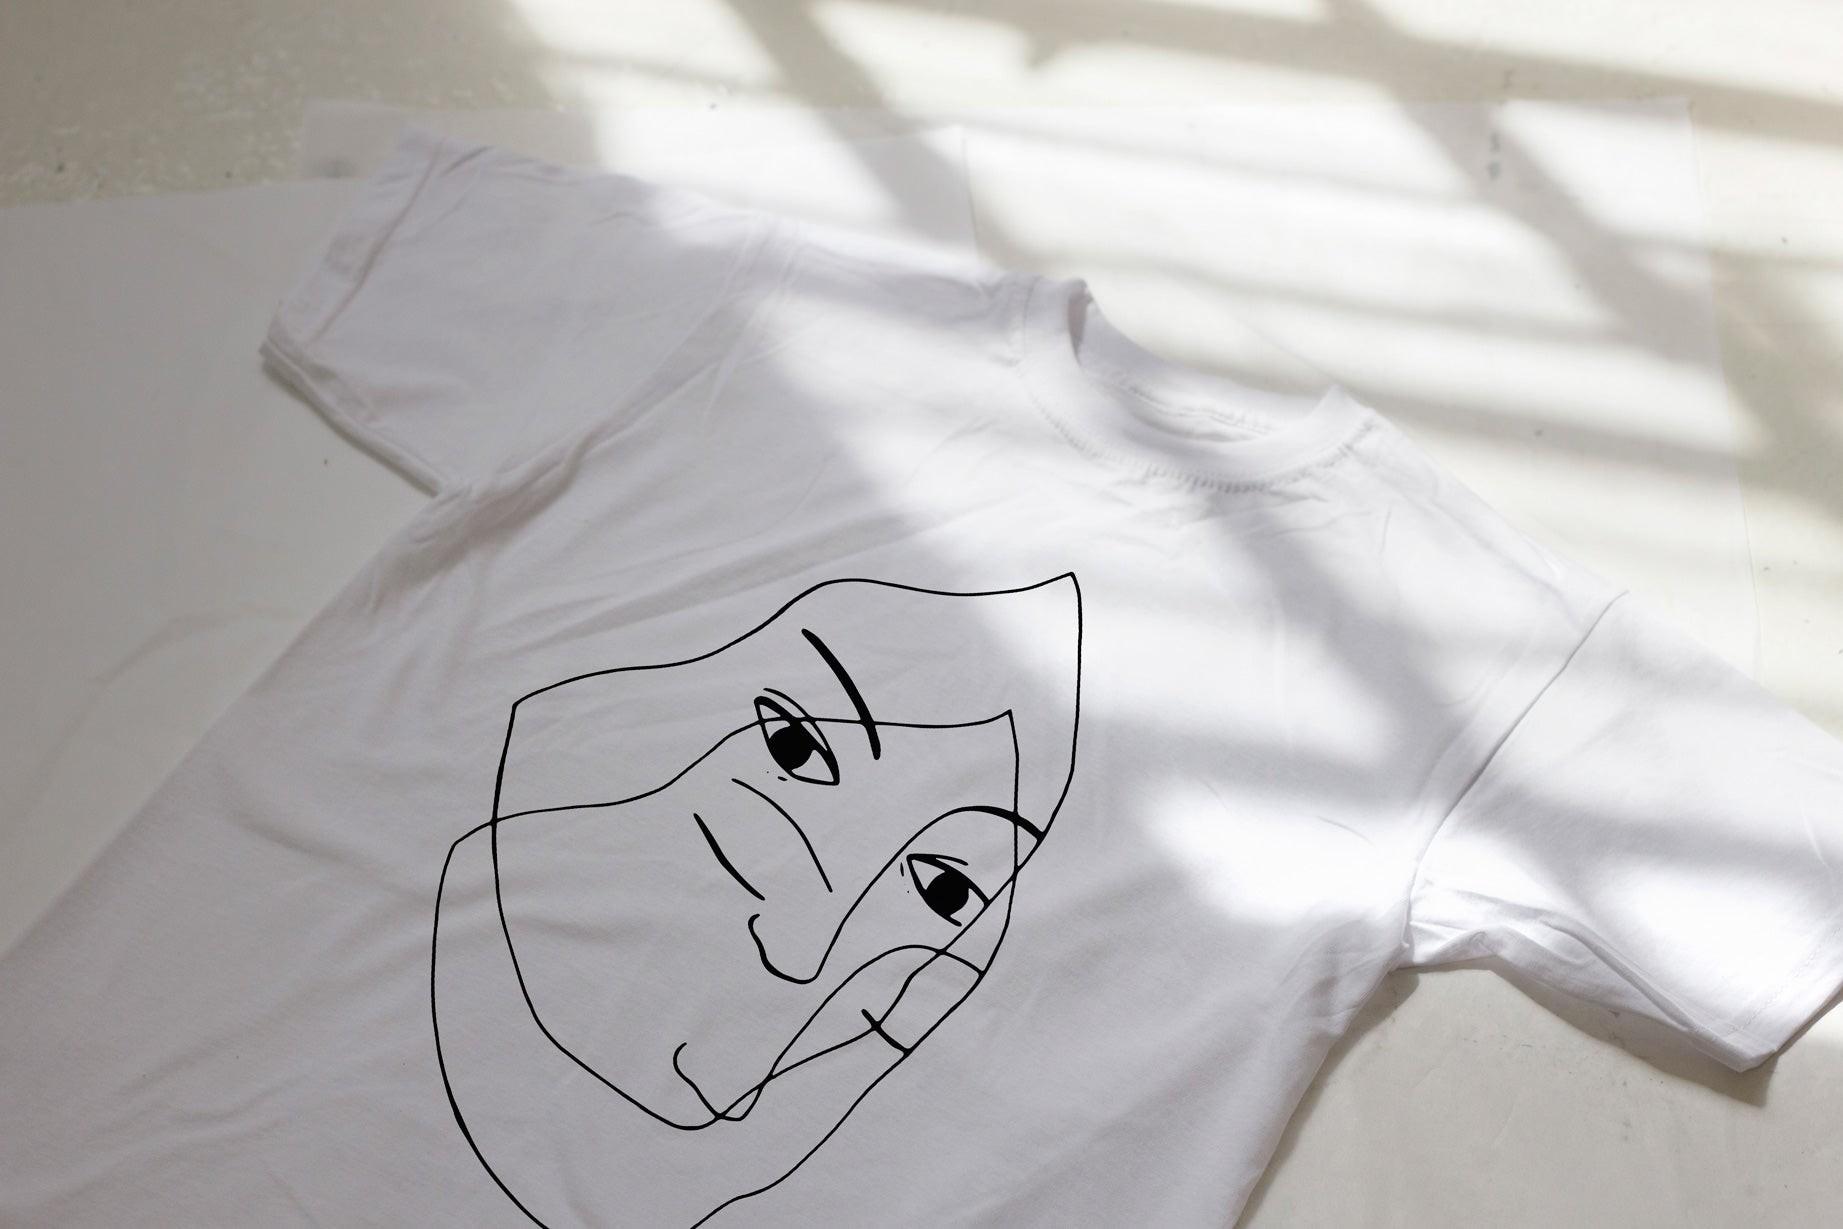 'Anomie' limited edition tee